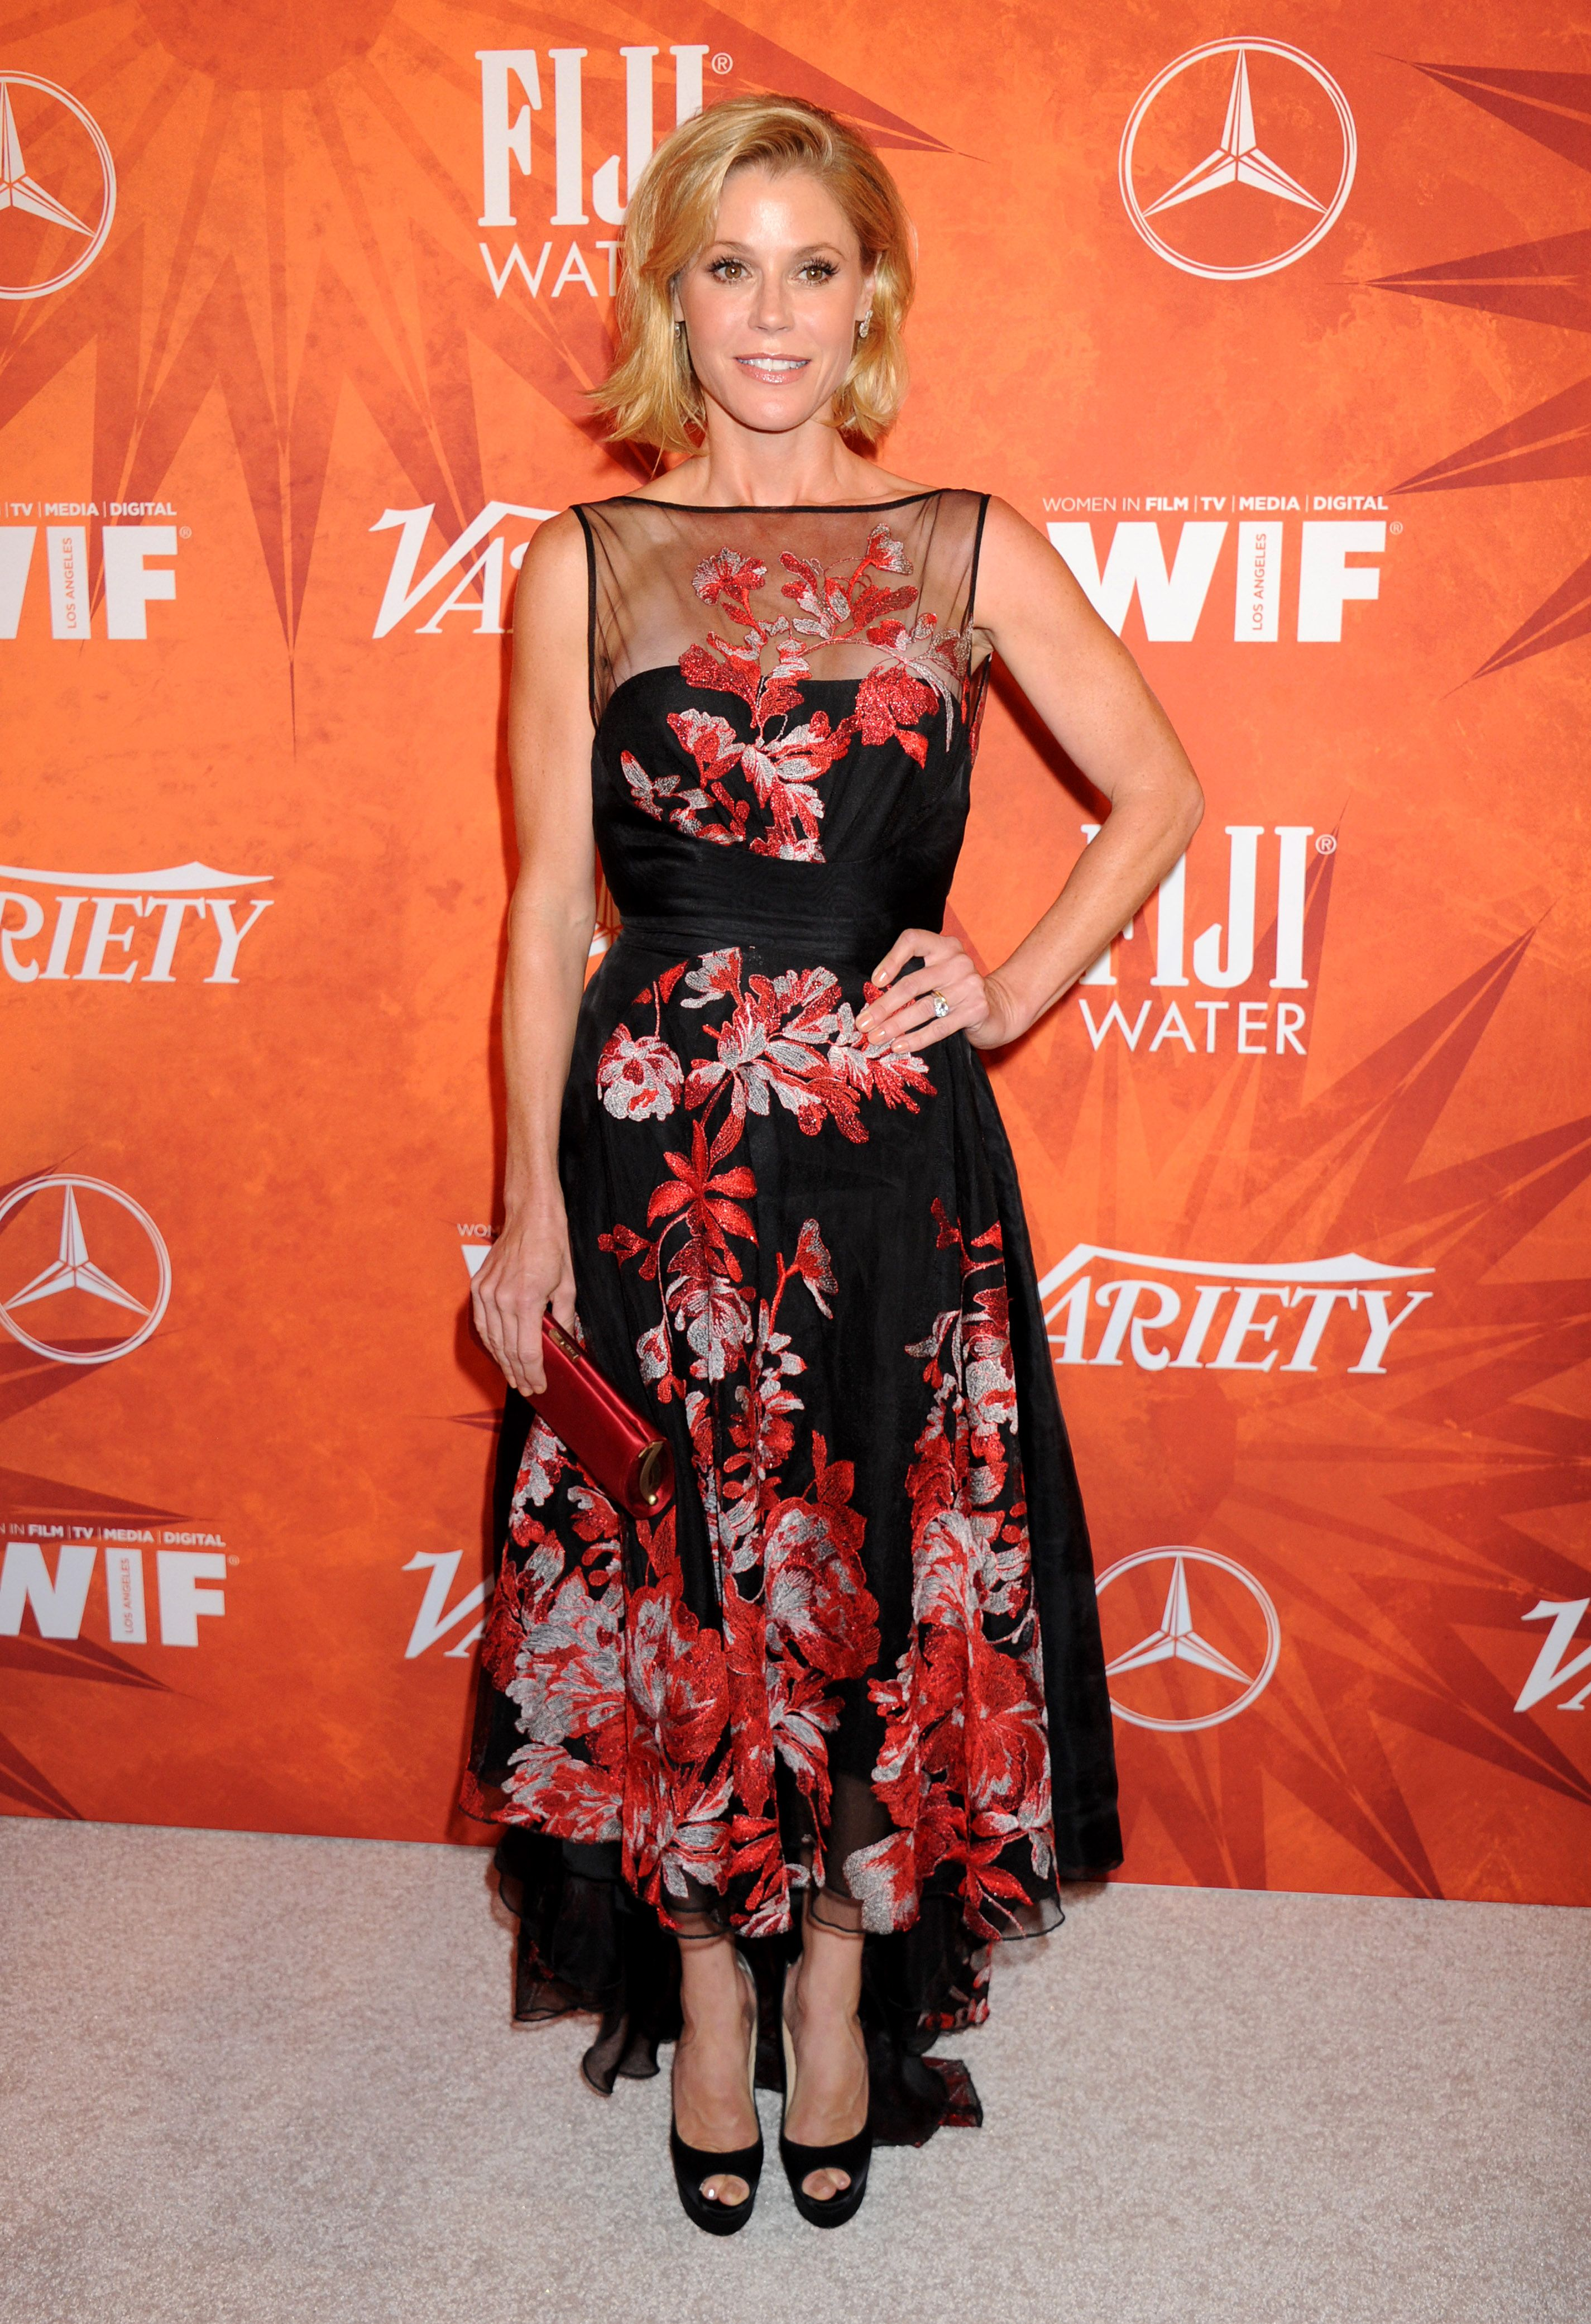 Julie Bowen arrives at the Variety And Women In Film Annual Pre-Emmy Celebration at Gracias Madre on September 18, 2015 in West Hollywood, California.